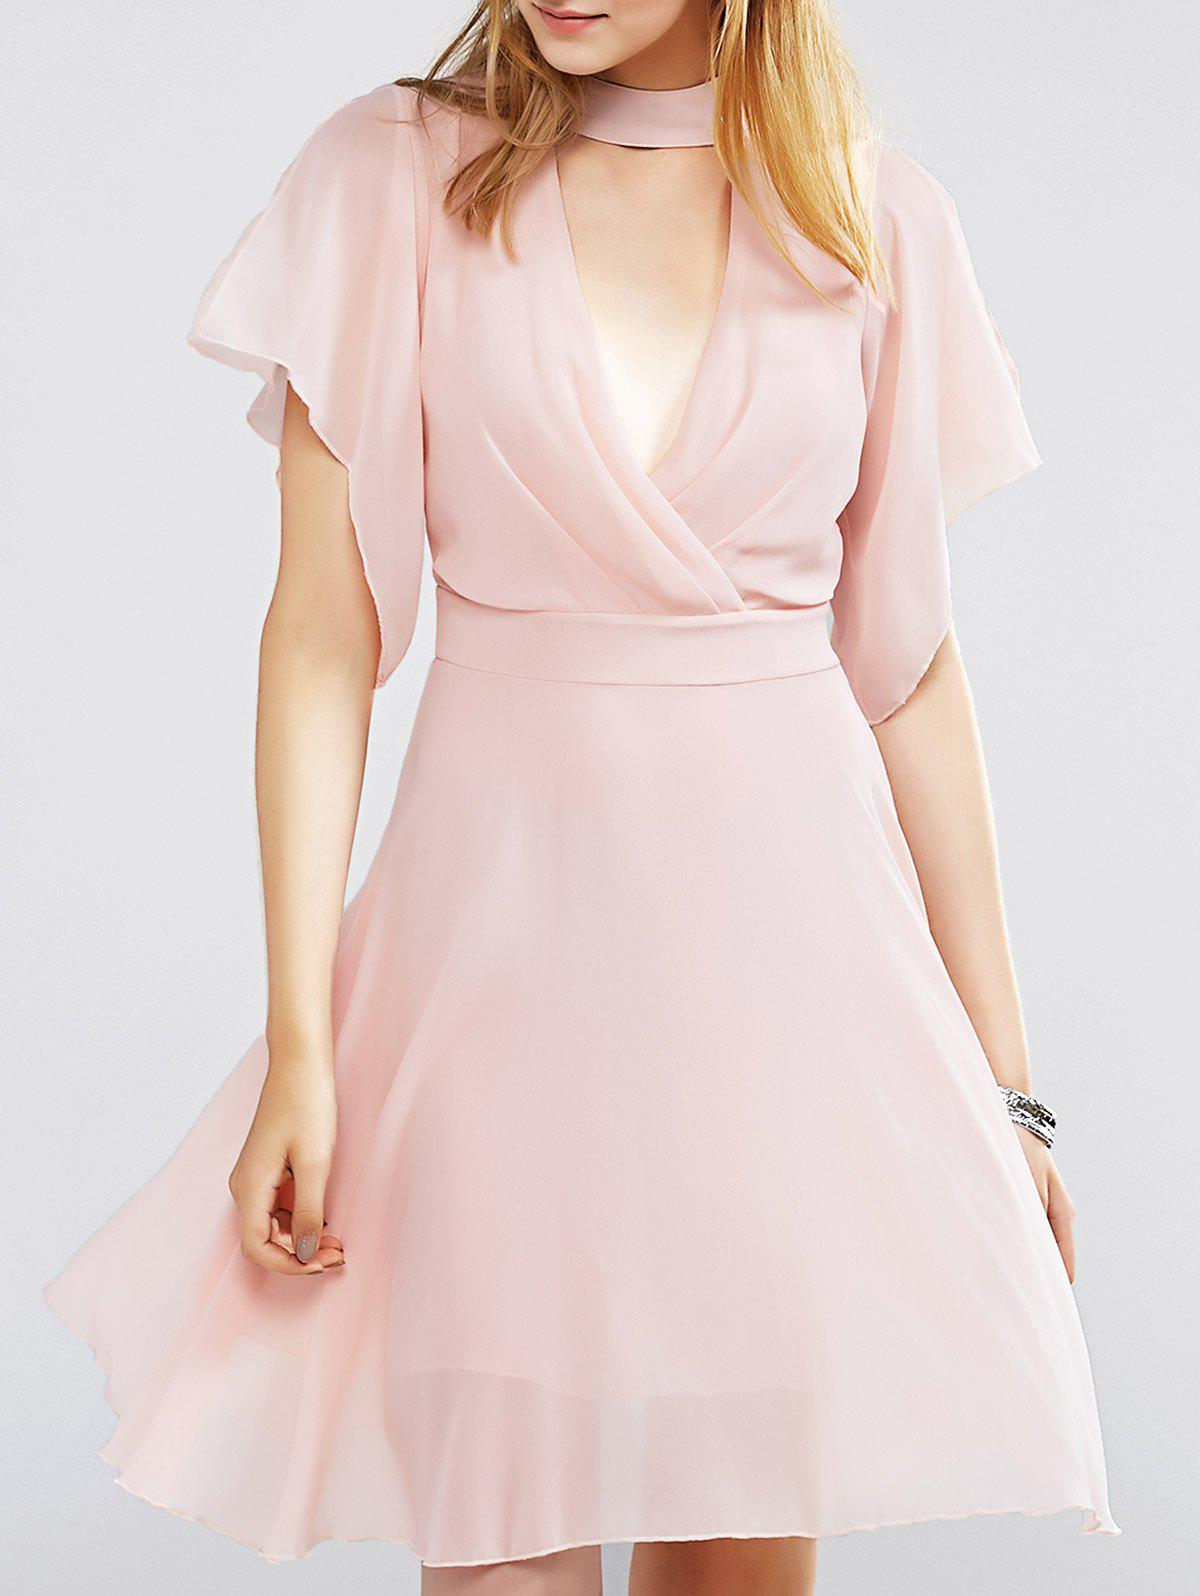 Sweet Choker Surplice Nipped Waist Women's Dress - PINK XL